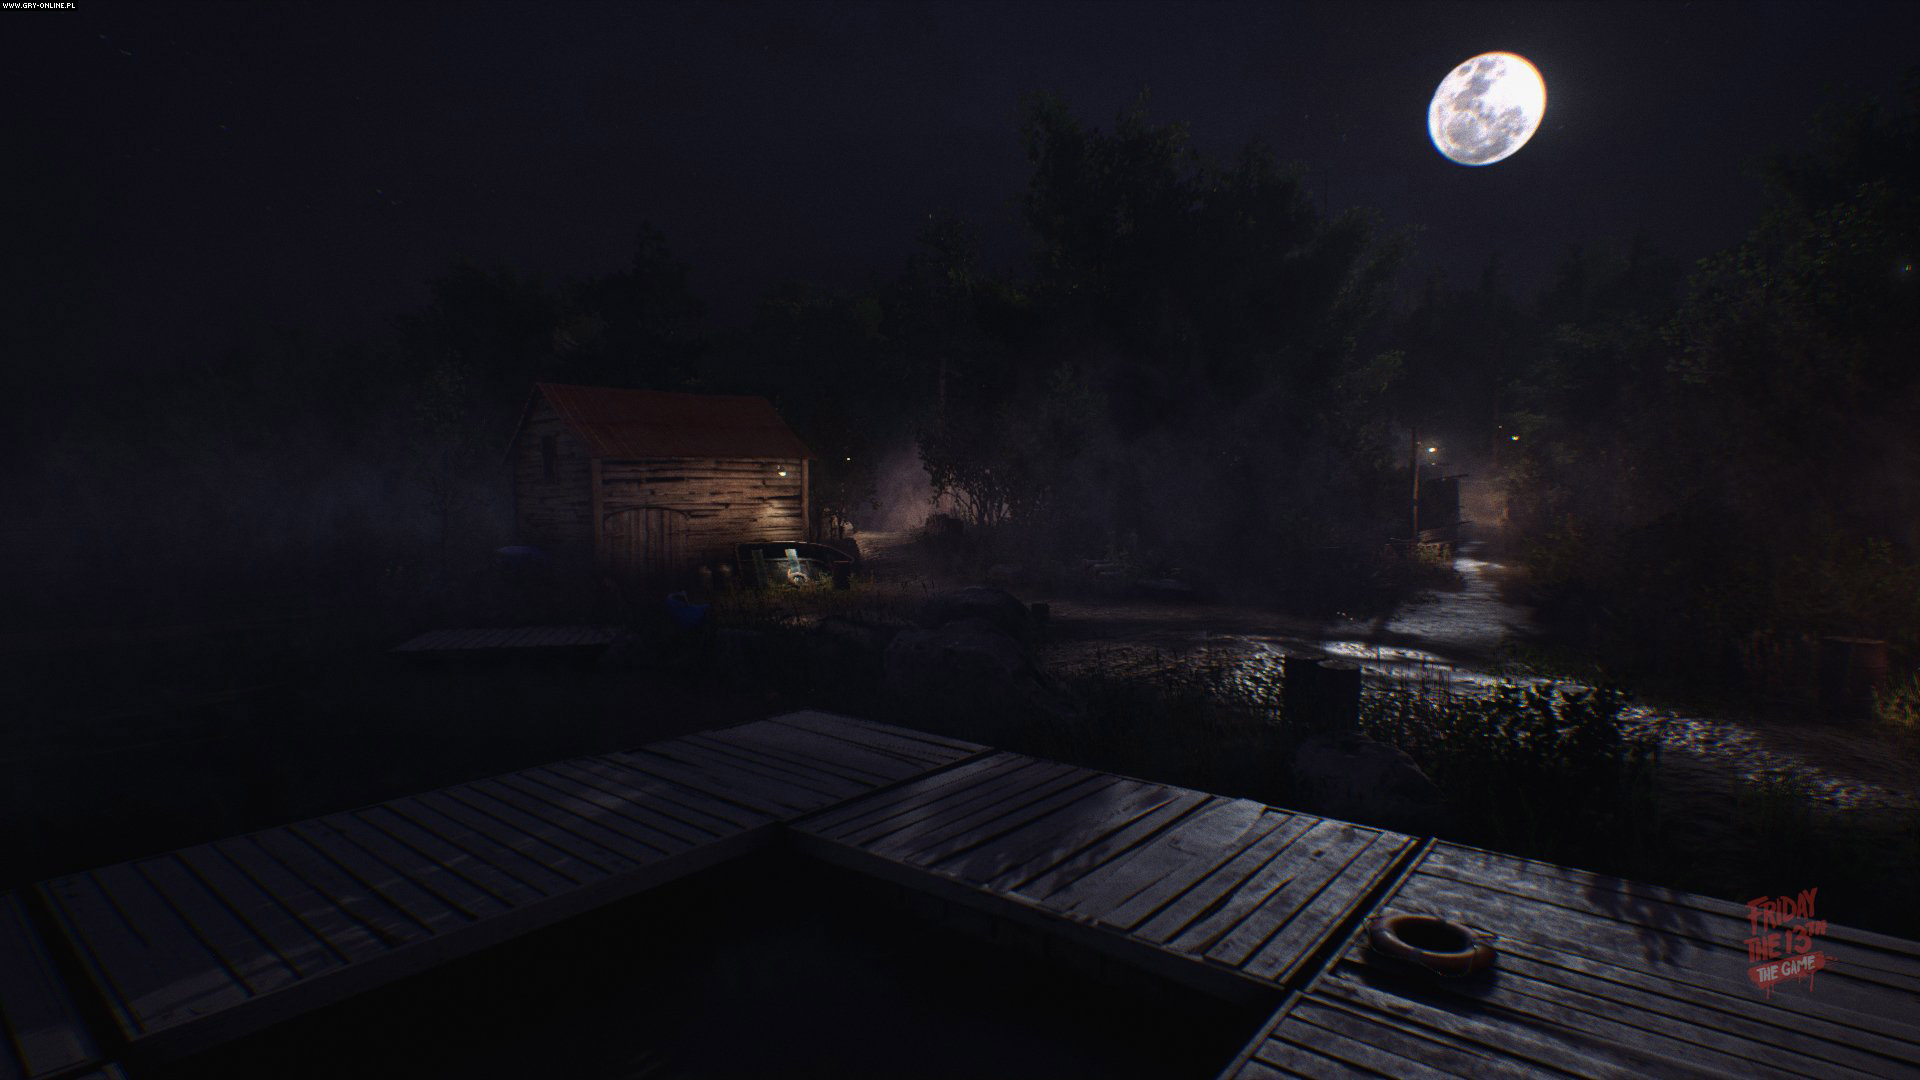 Friday the 13th Wallpaper in 1920x1080